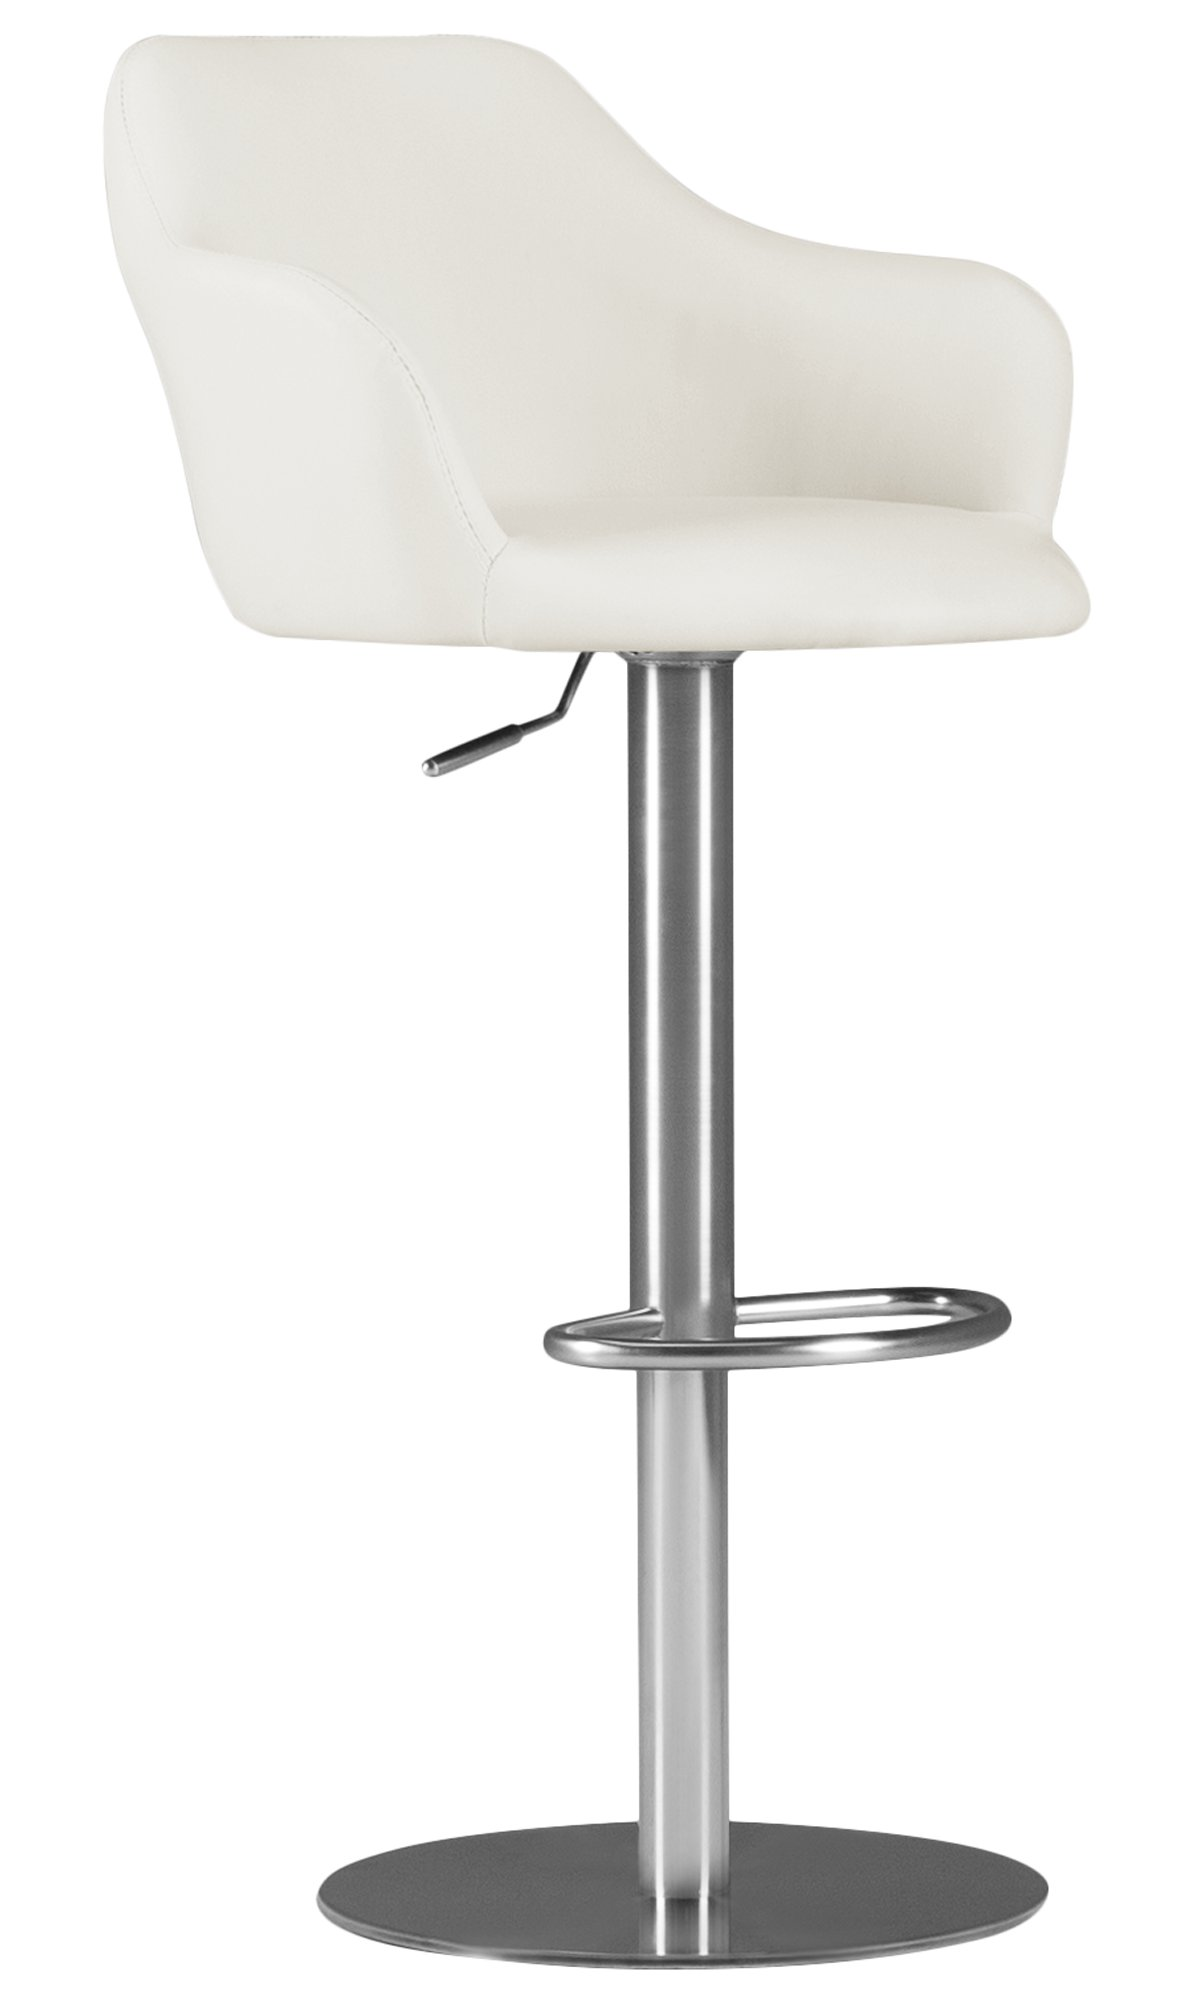 City Furniture Hyde White Upholstered Adjustable Stool